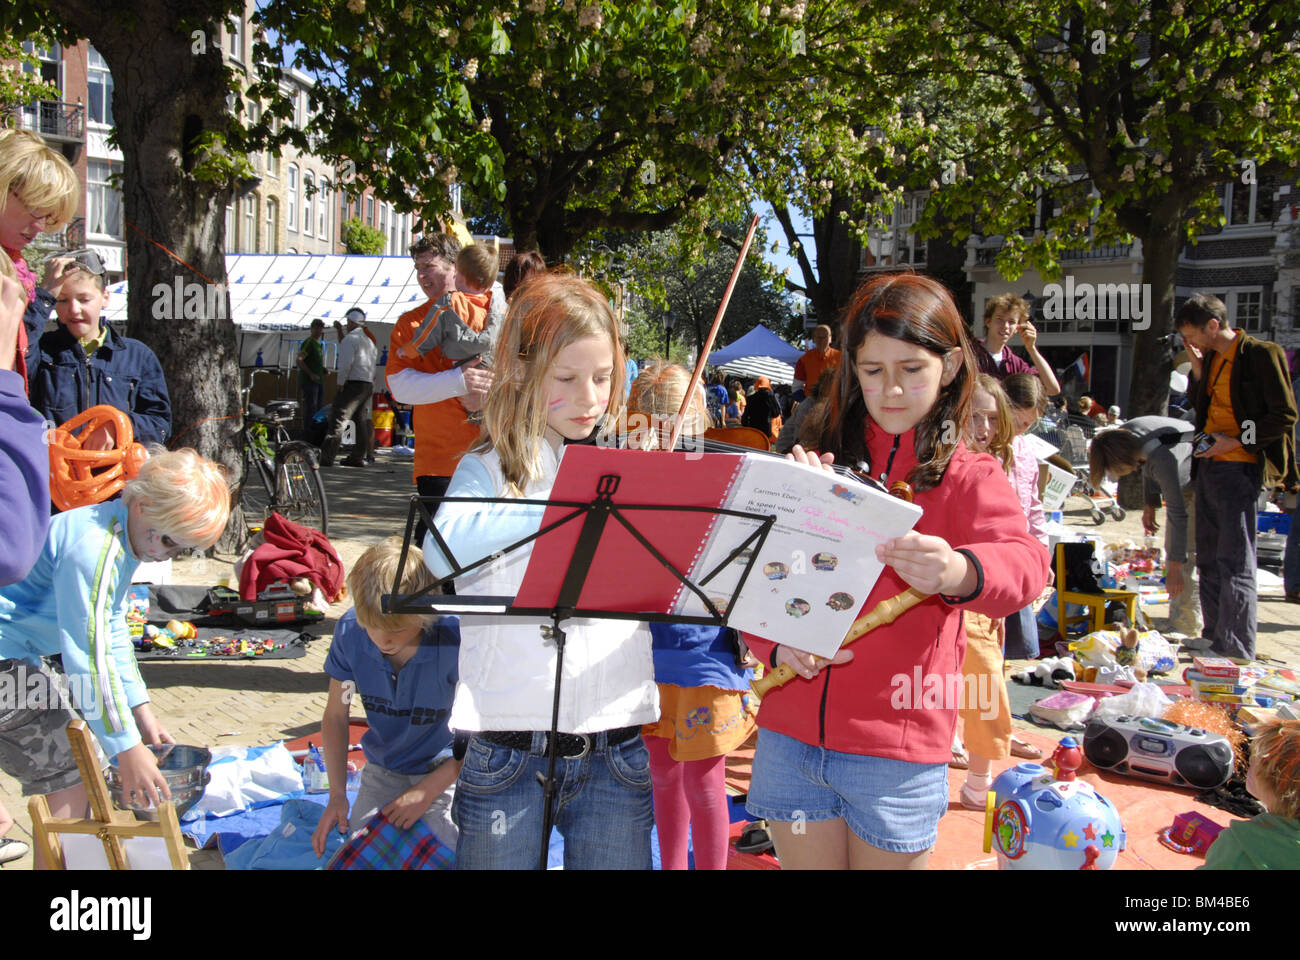 Koninginnedag Amsterdam queensday 30 april crowd festive free market people young two children violin performance - Stock Image